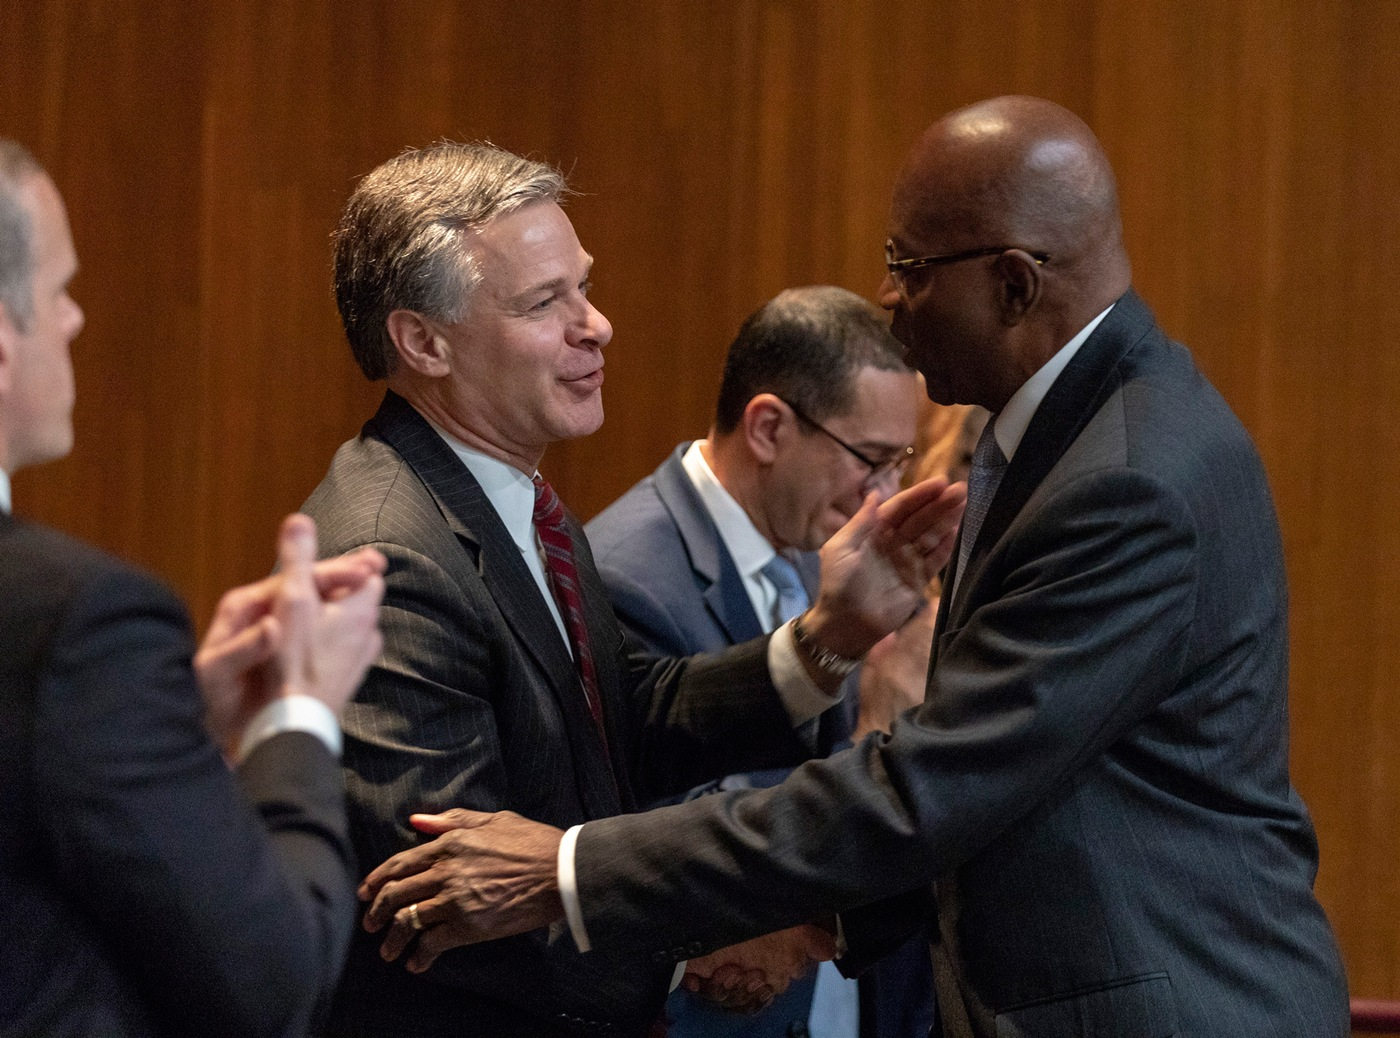 FBI Director Christopher Wray shakes hands with retired special agent Dr. John Glover at an event marking the 100th anniversary of African-American special agents held at FBI Headquarters on November 8, 2019.